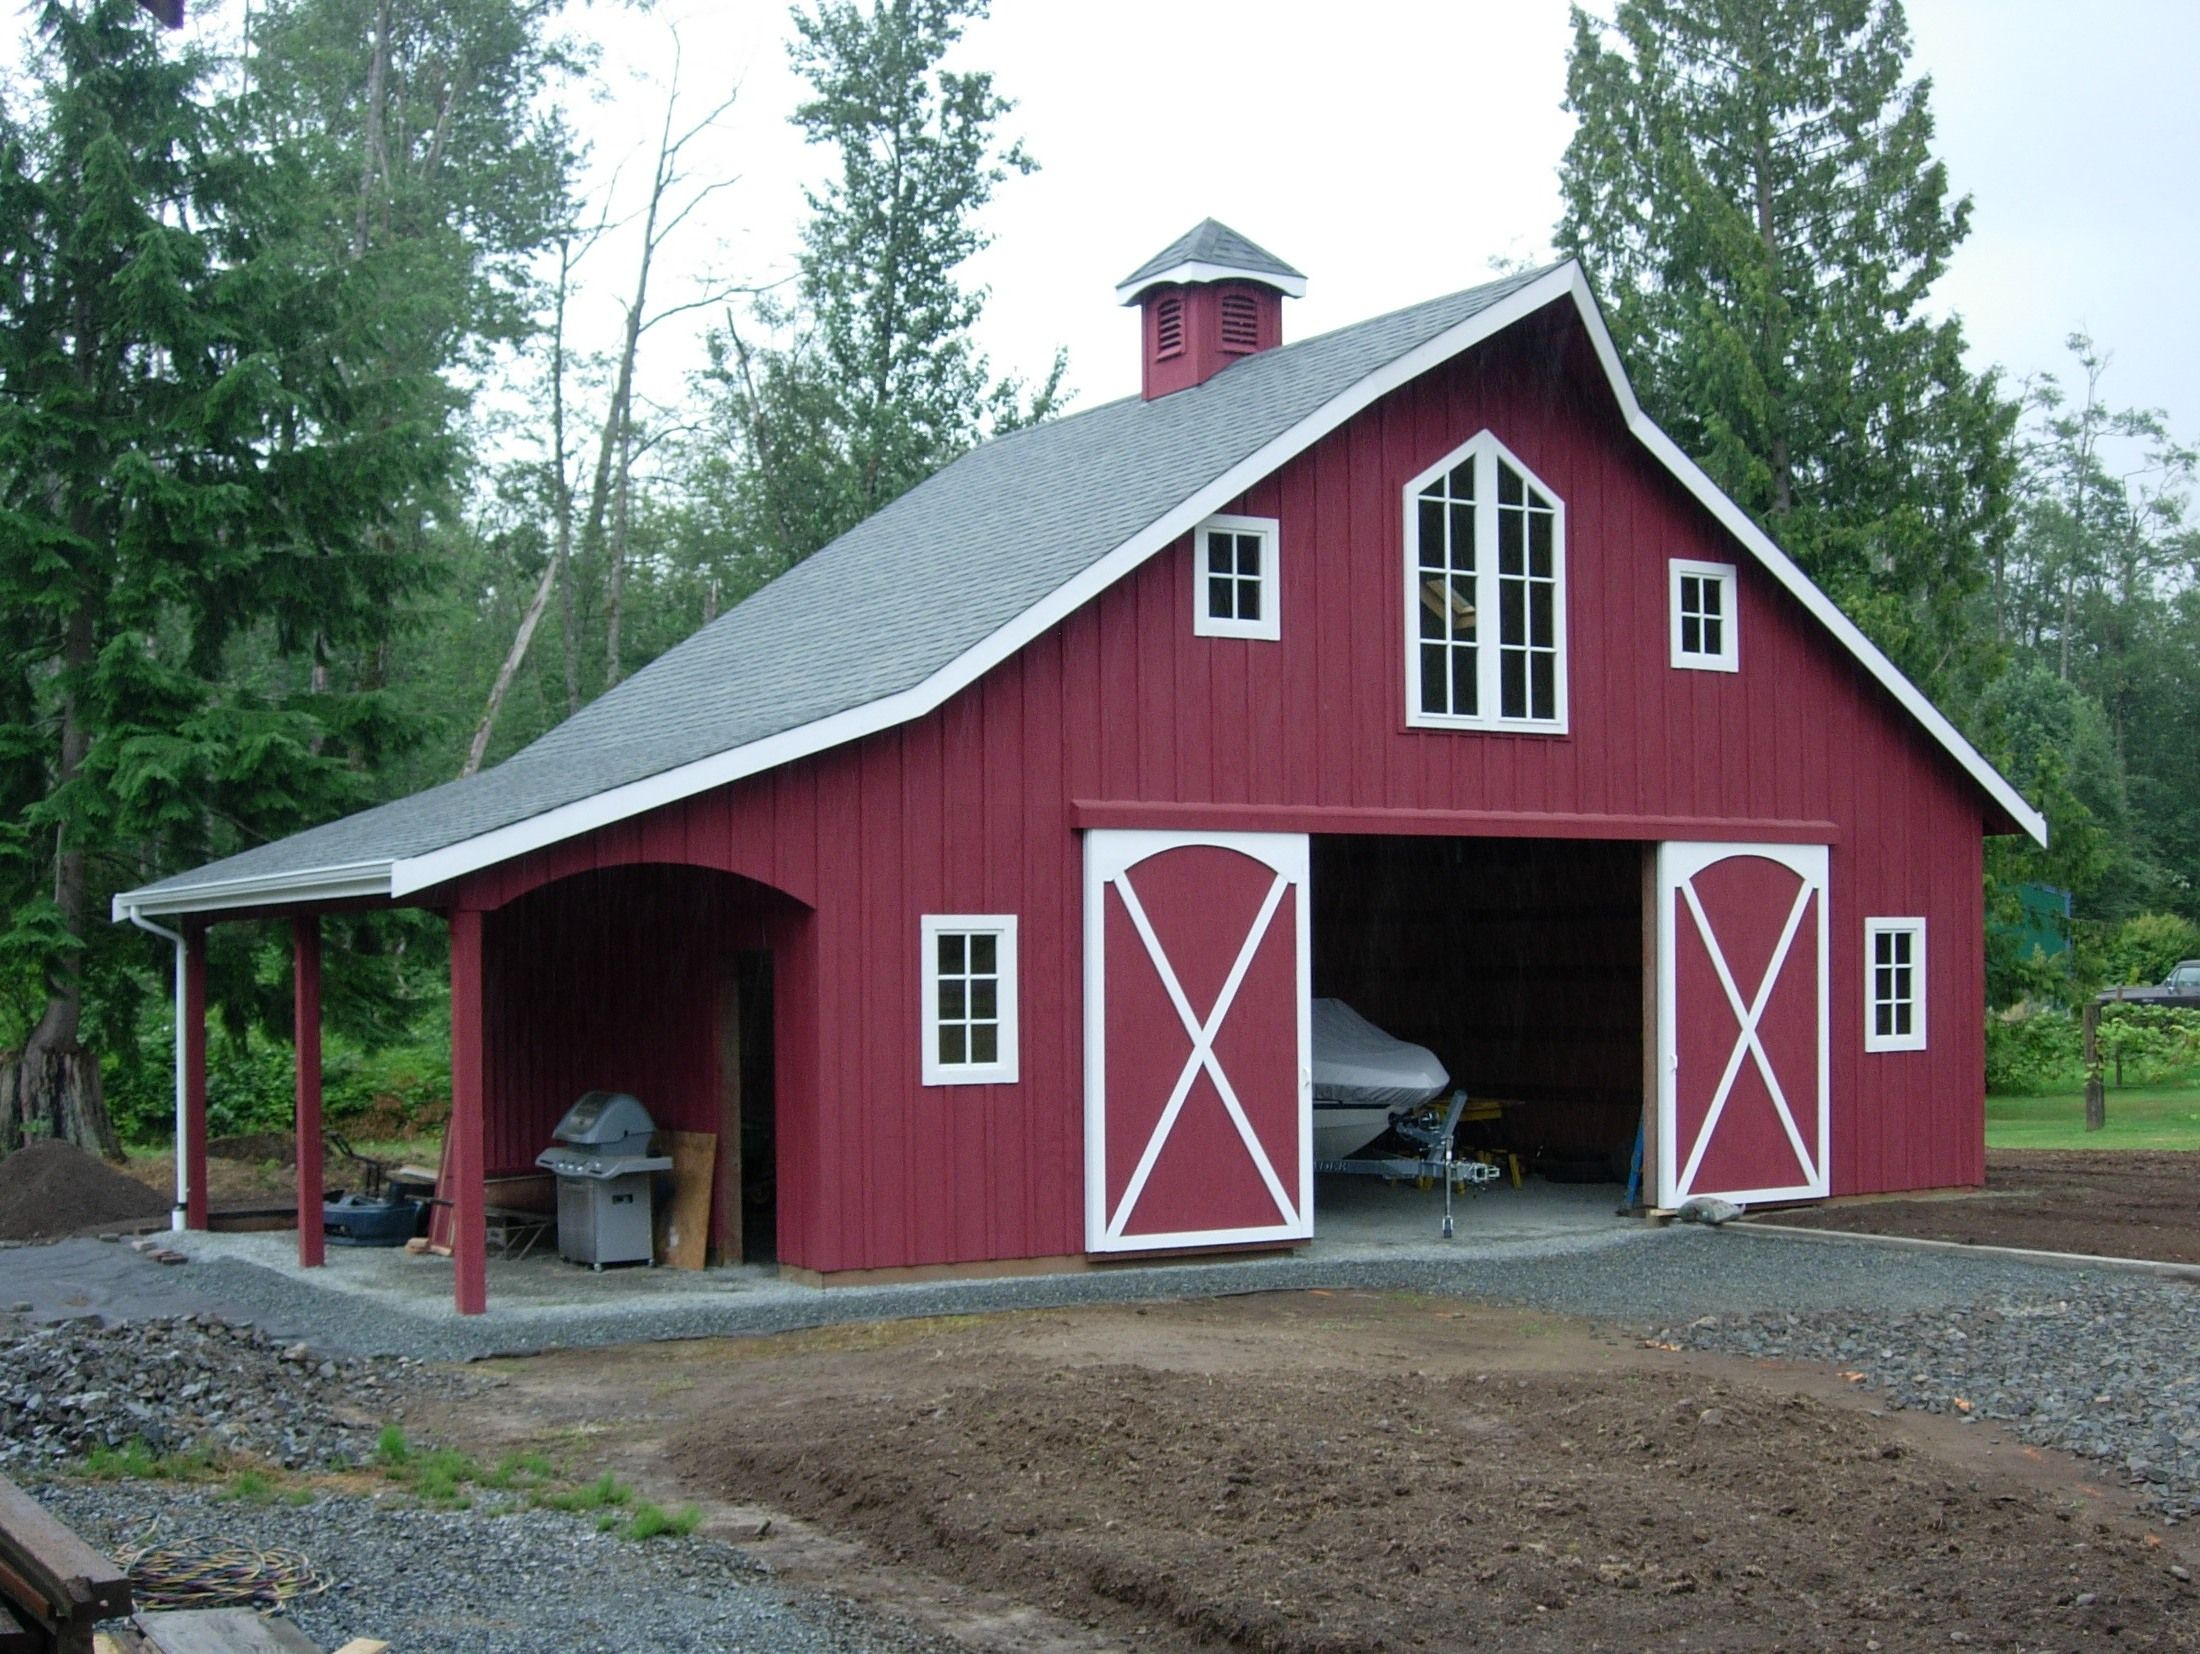 barn design more horses need a parallel stall arrangement